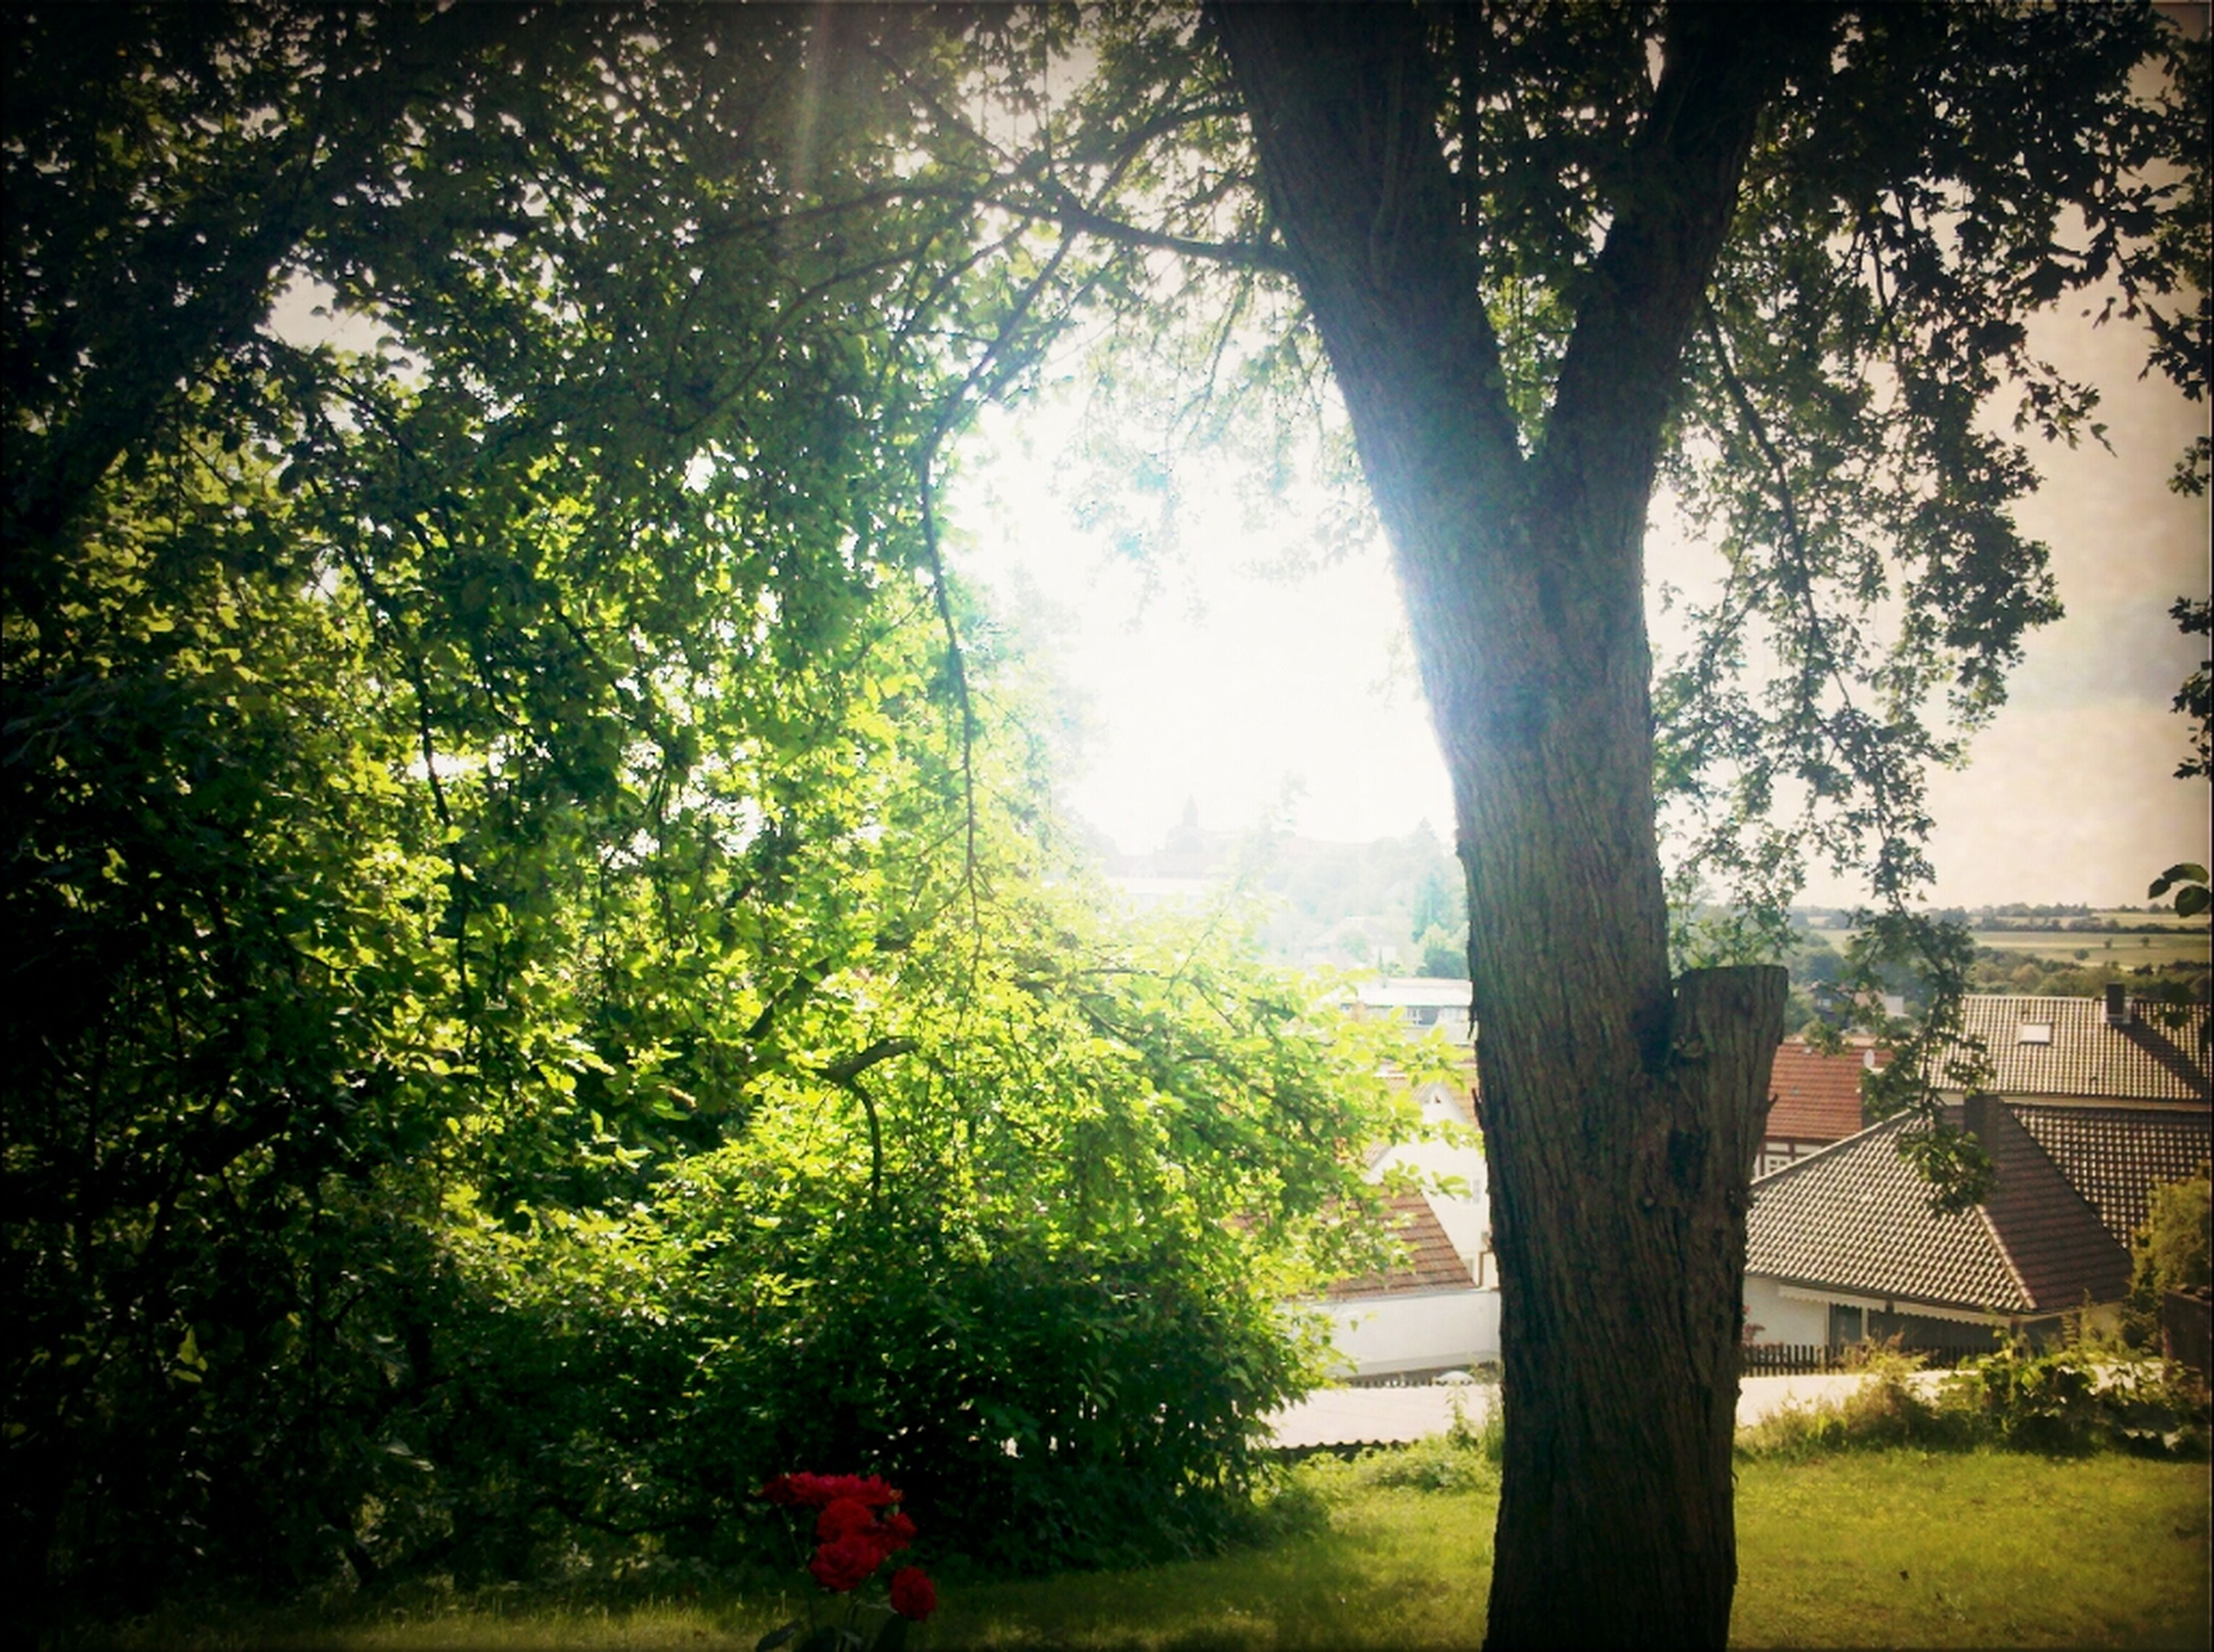 tree, grass, growth, branch, tree trunk, green color, park - man made space, nature, tranquility, sunlight, grassy, bench, beauty in nature, park, day, lawn, tranquil scene, field, outdoors, sky